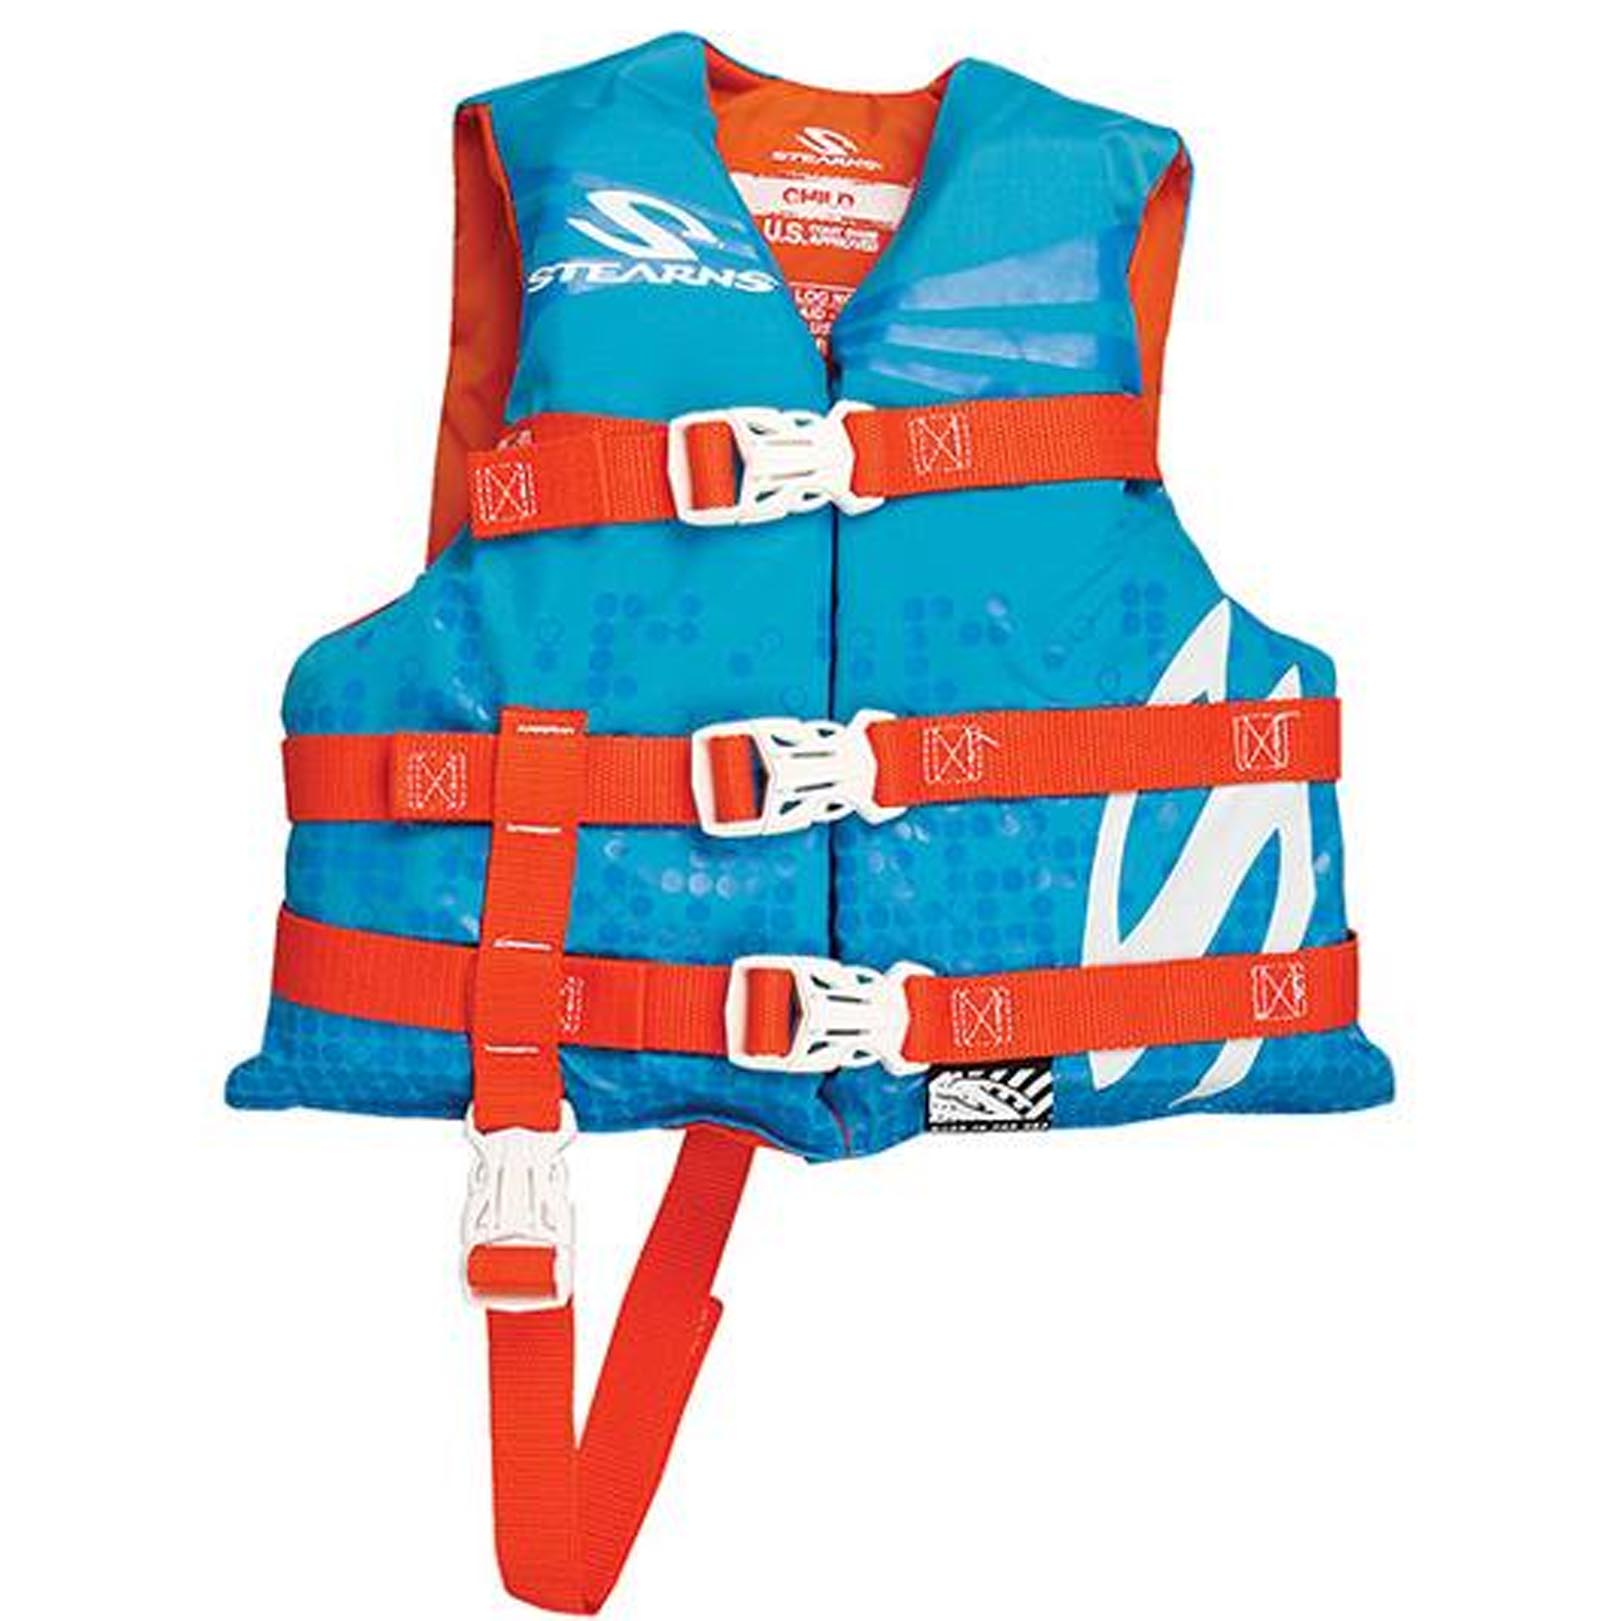 Click here to buy COLEMAN Stearns Classic Series Child Kid's Life Jacket Flotation Vest 30-50Lbs.